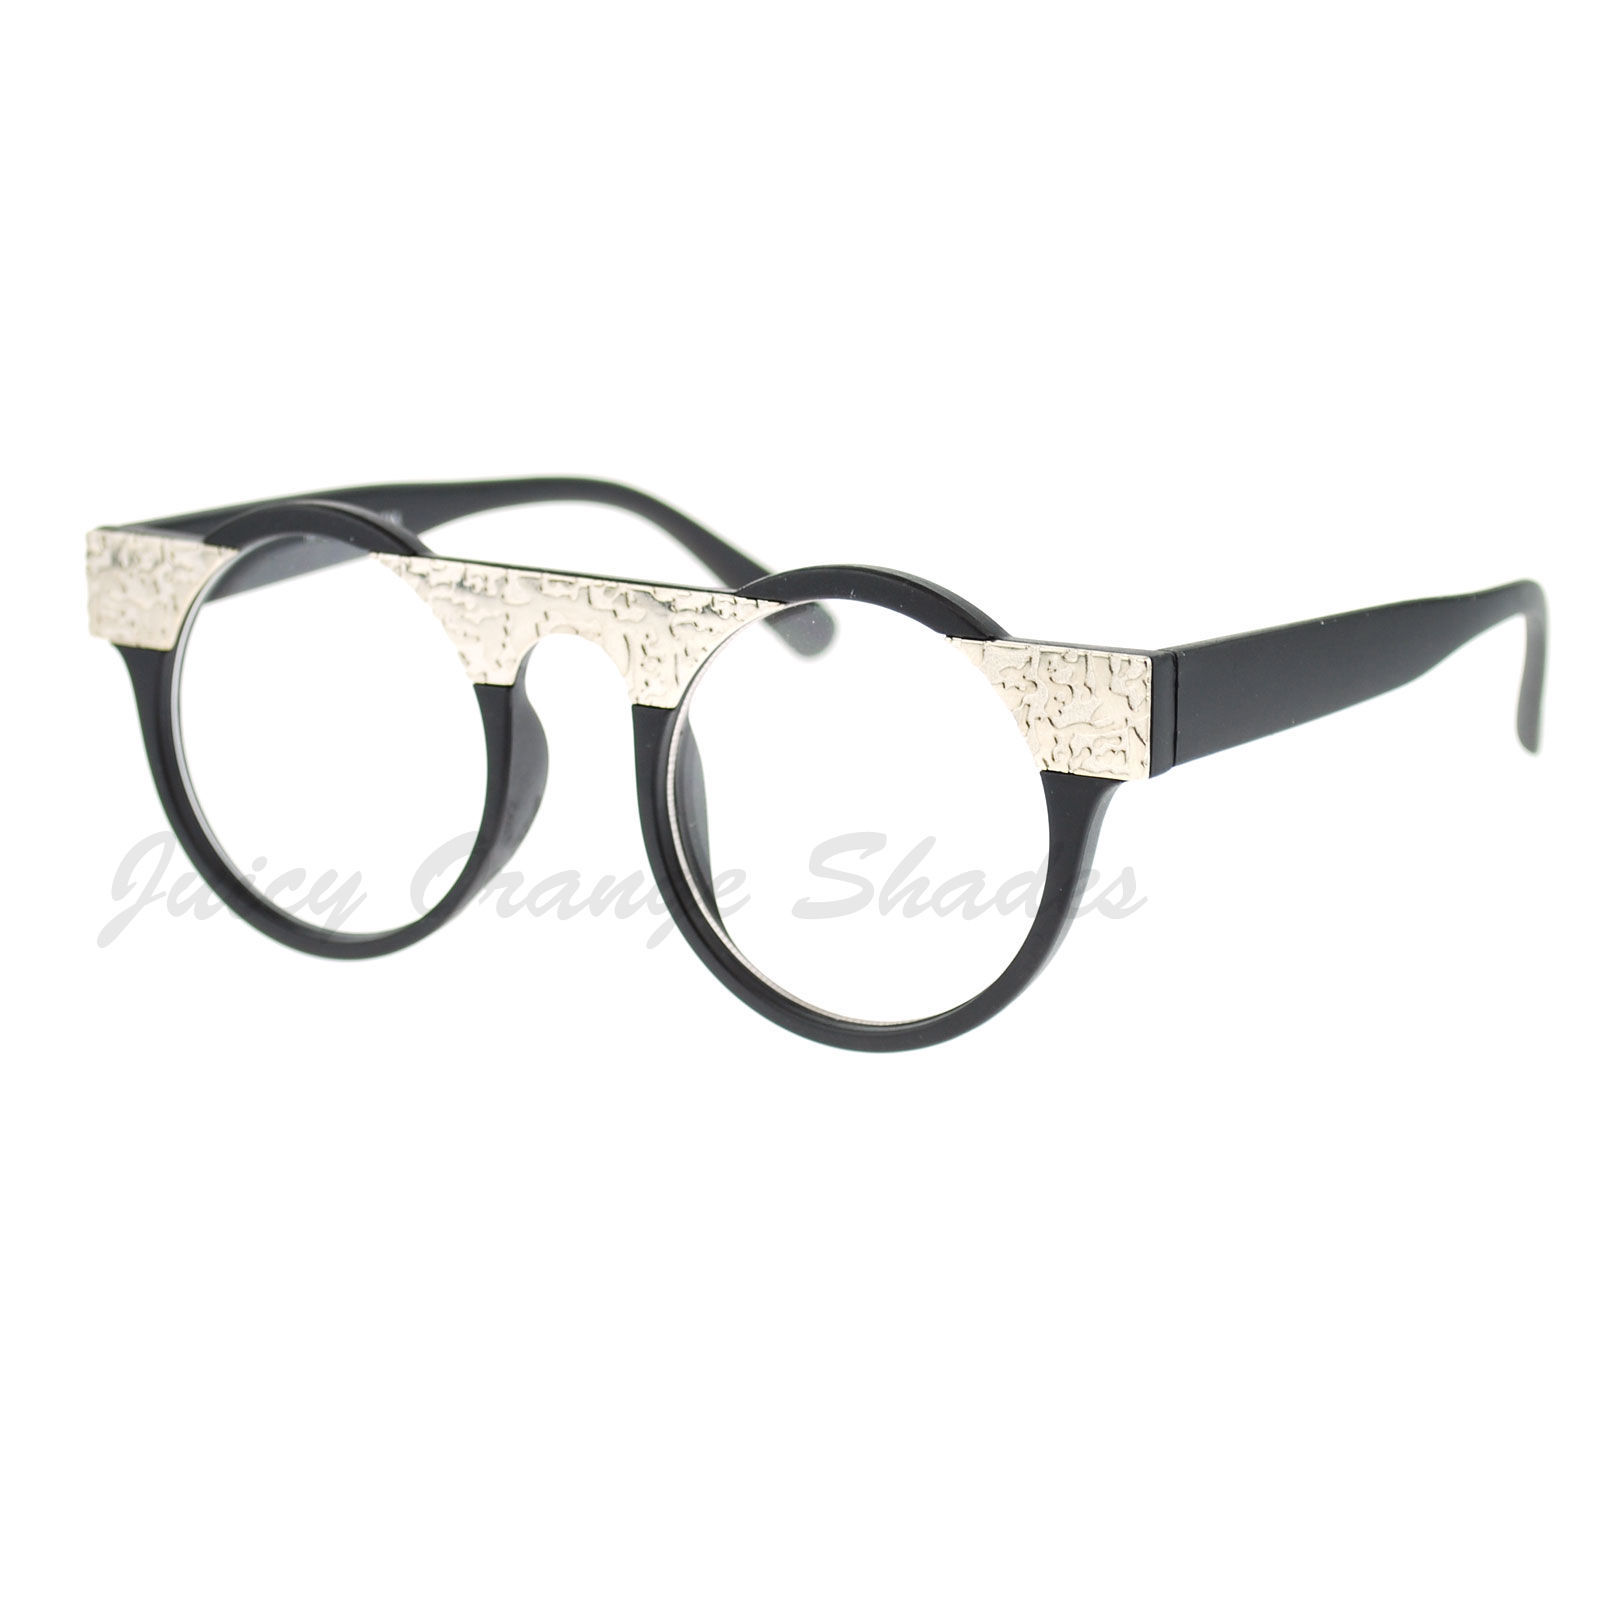 Round Frame Glasses Nz : Unique Clear Lens Glasses Round Circle Silver Plate Top ...